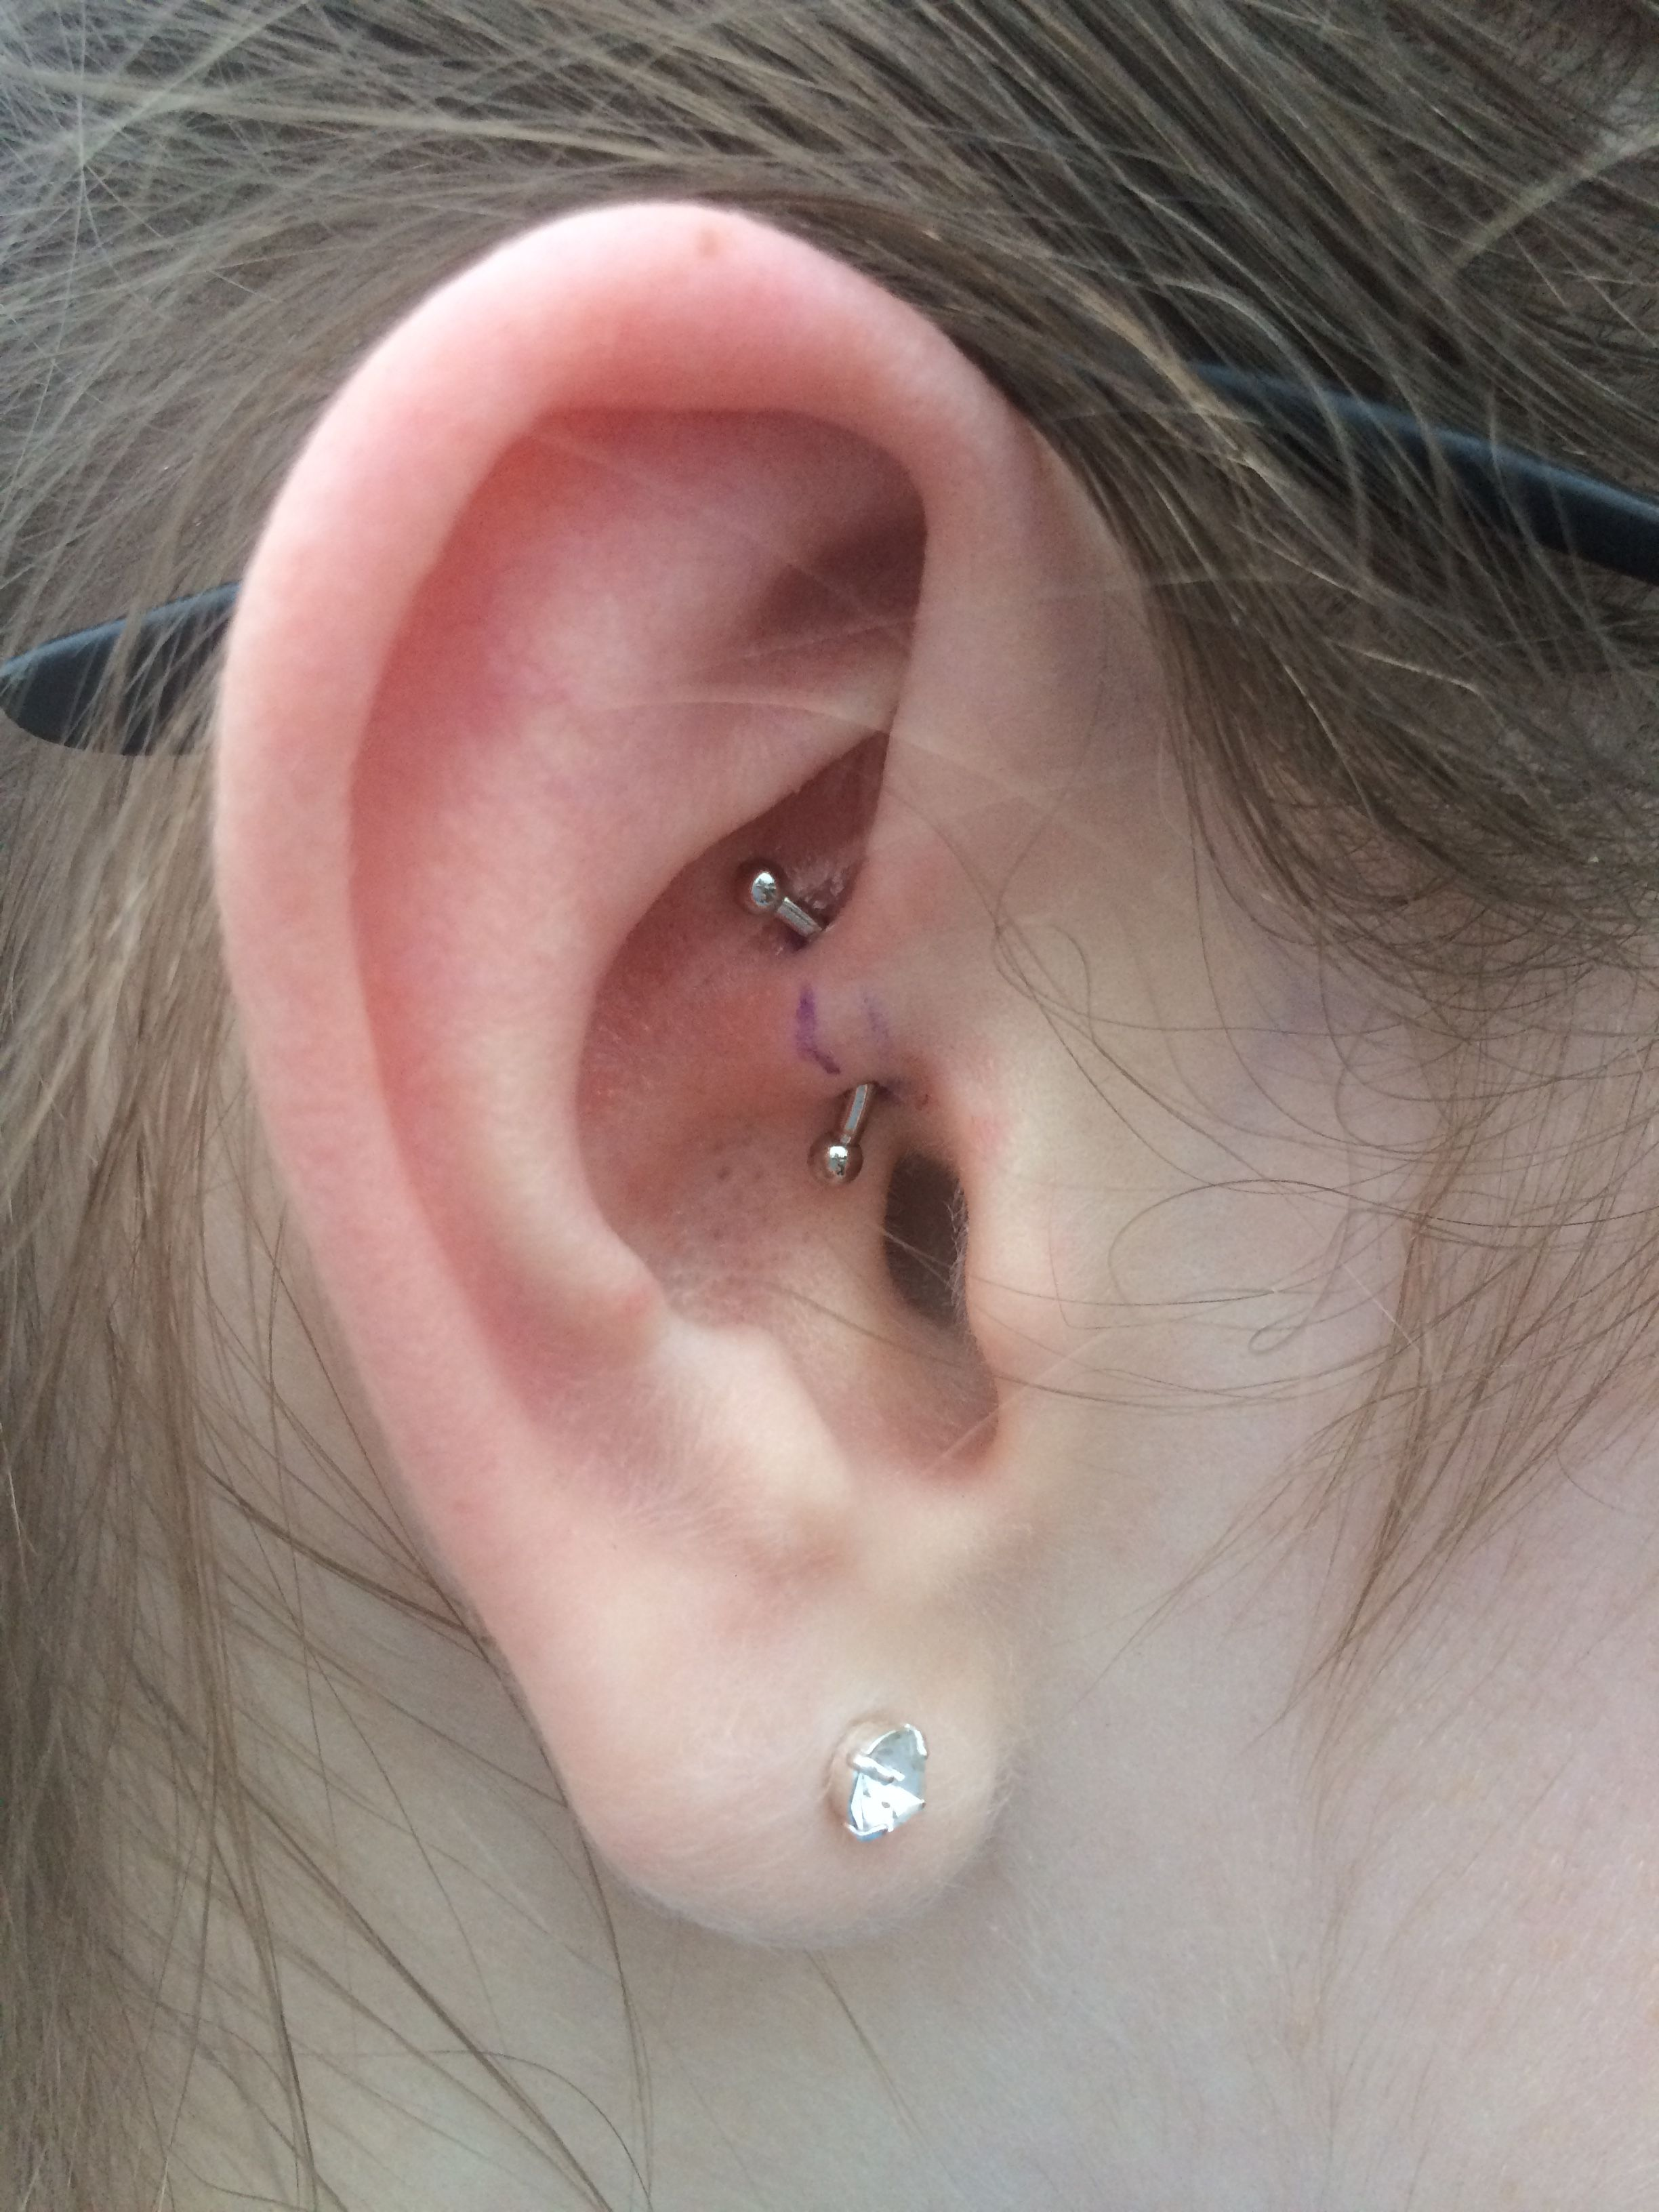 Daith Piercing I Just Got Today It Hurt But Not As Much As I